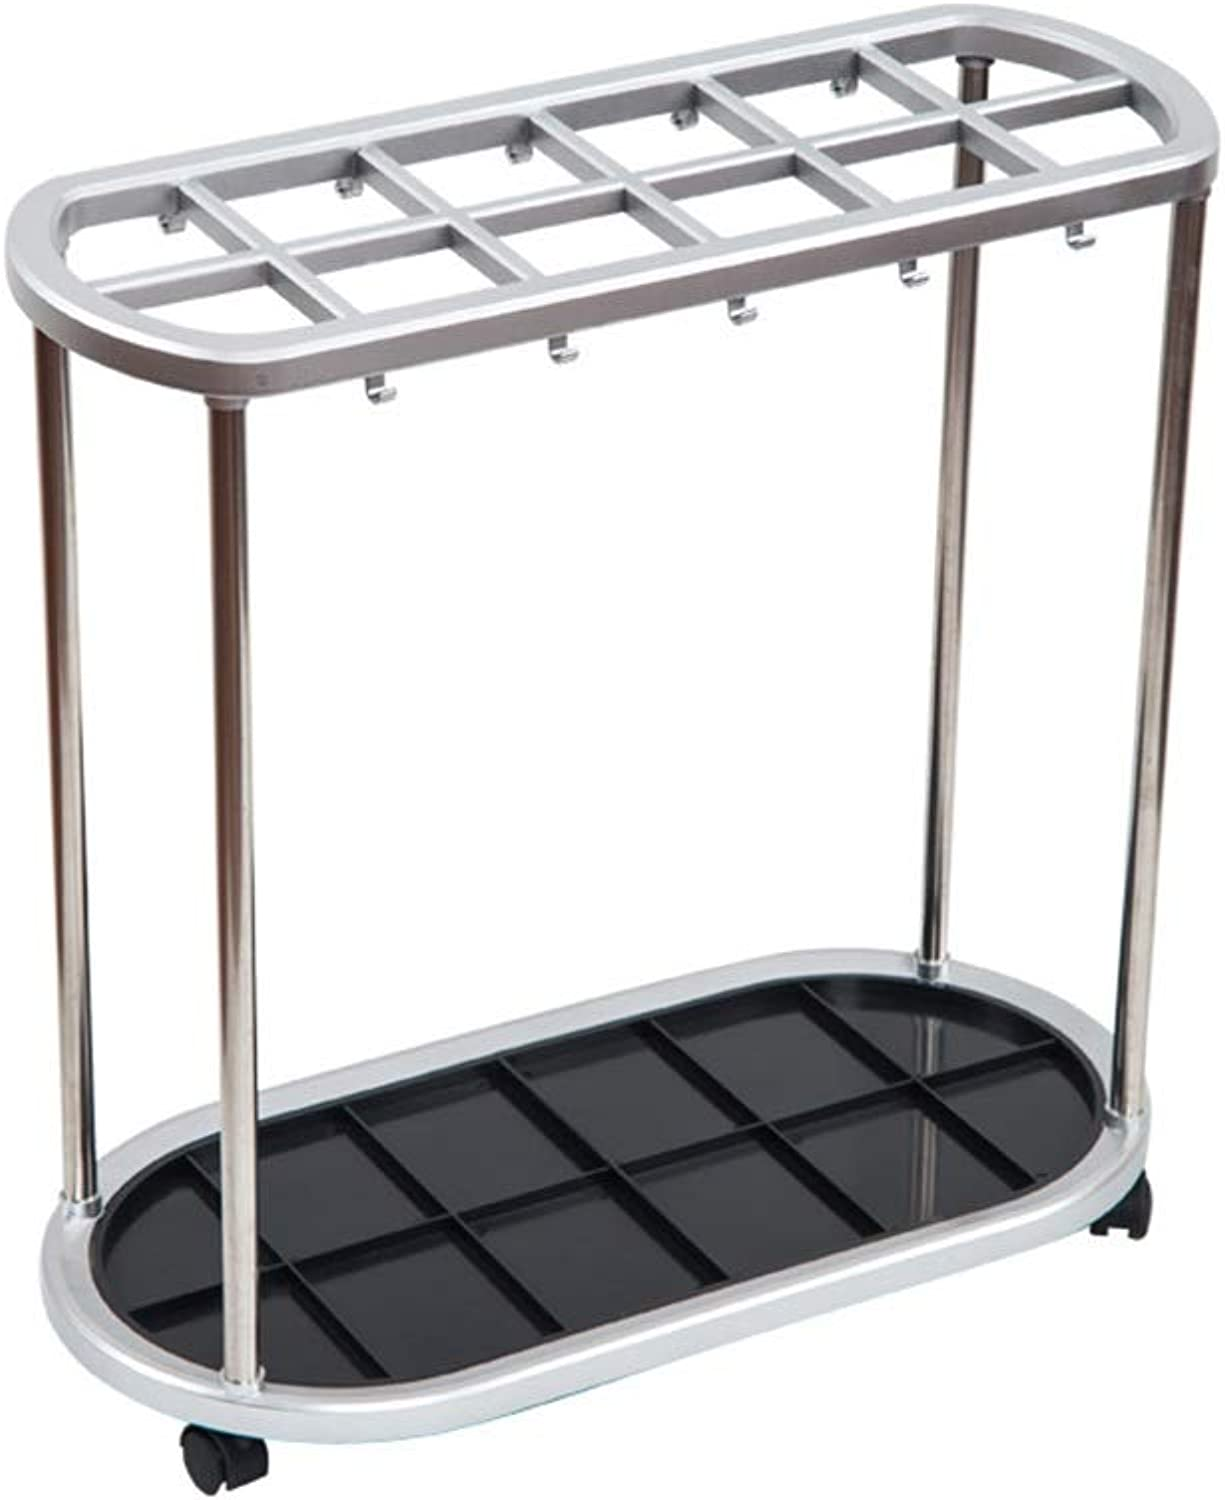 NNXD Umbrella Stand, Mobile Storage Rack 6 Holes 12 Holes 21 Holes for Commercial Hotel Lobby (Size   56X28X55CM)